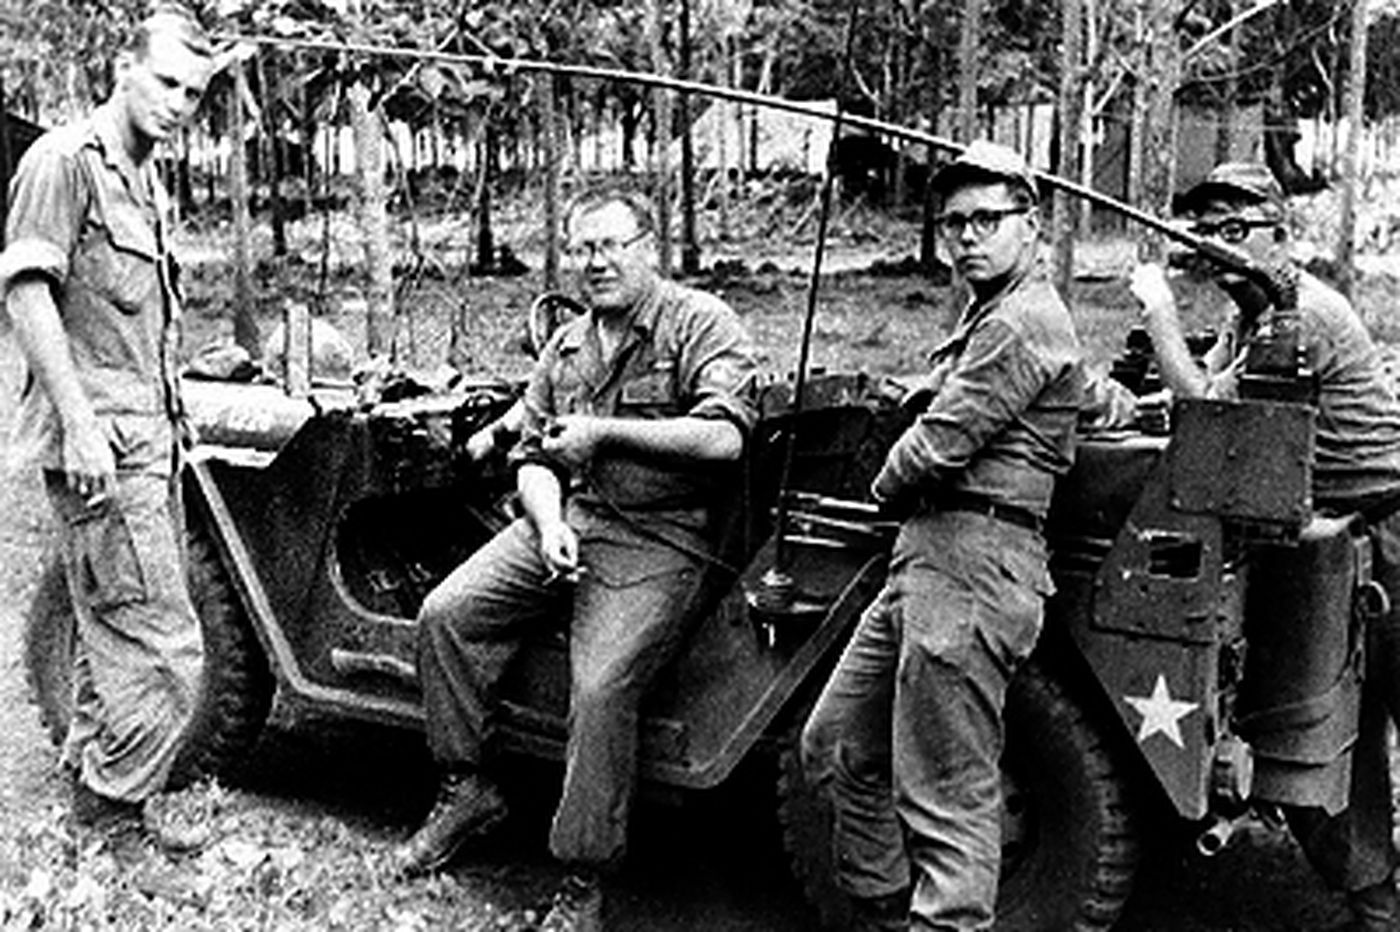 Back Channels: A letter home from a fallen Vietnam soldier.